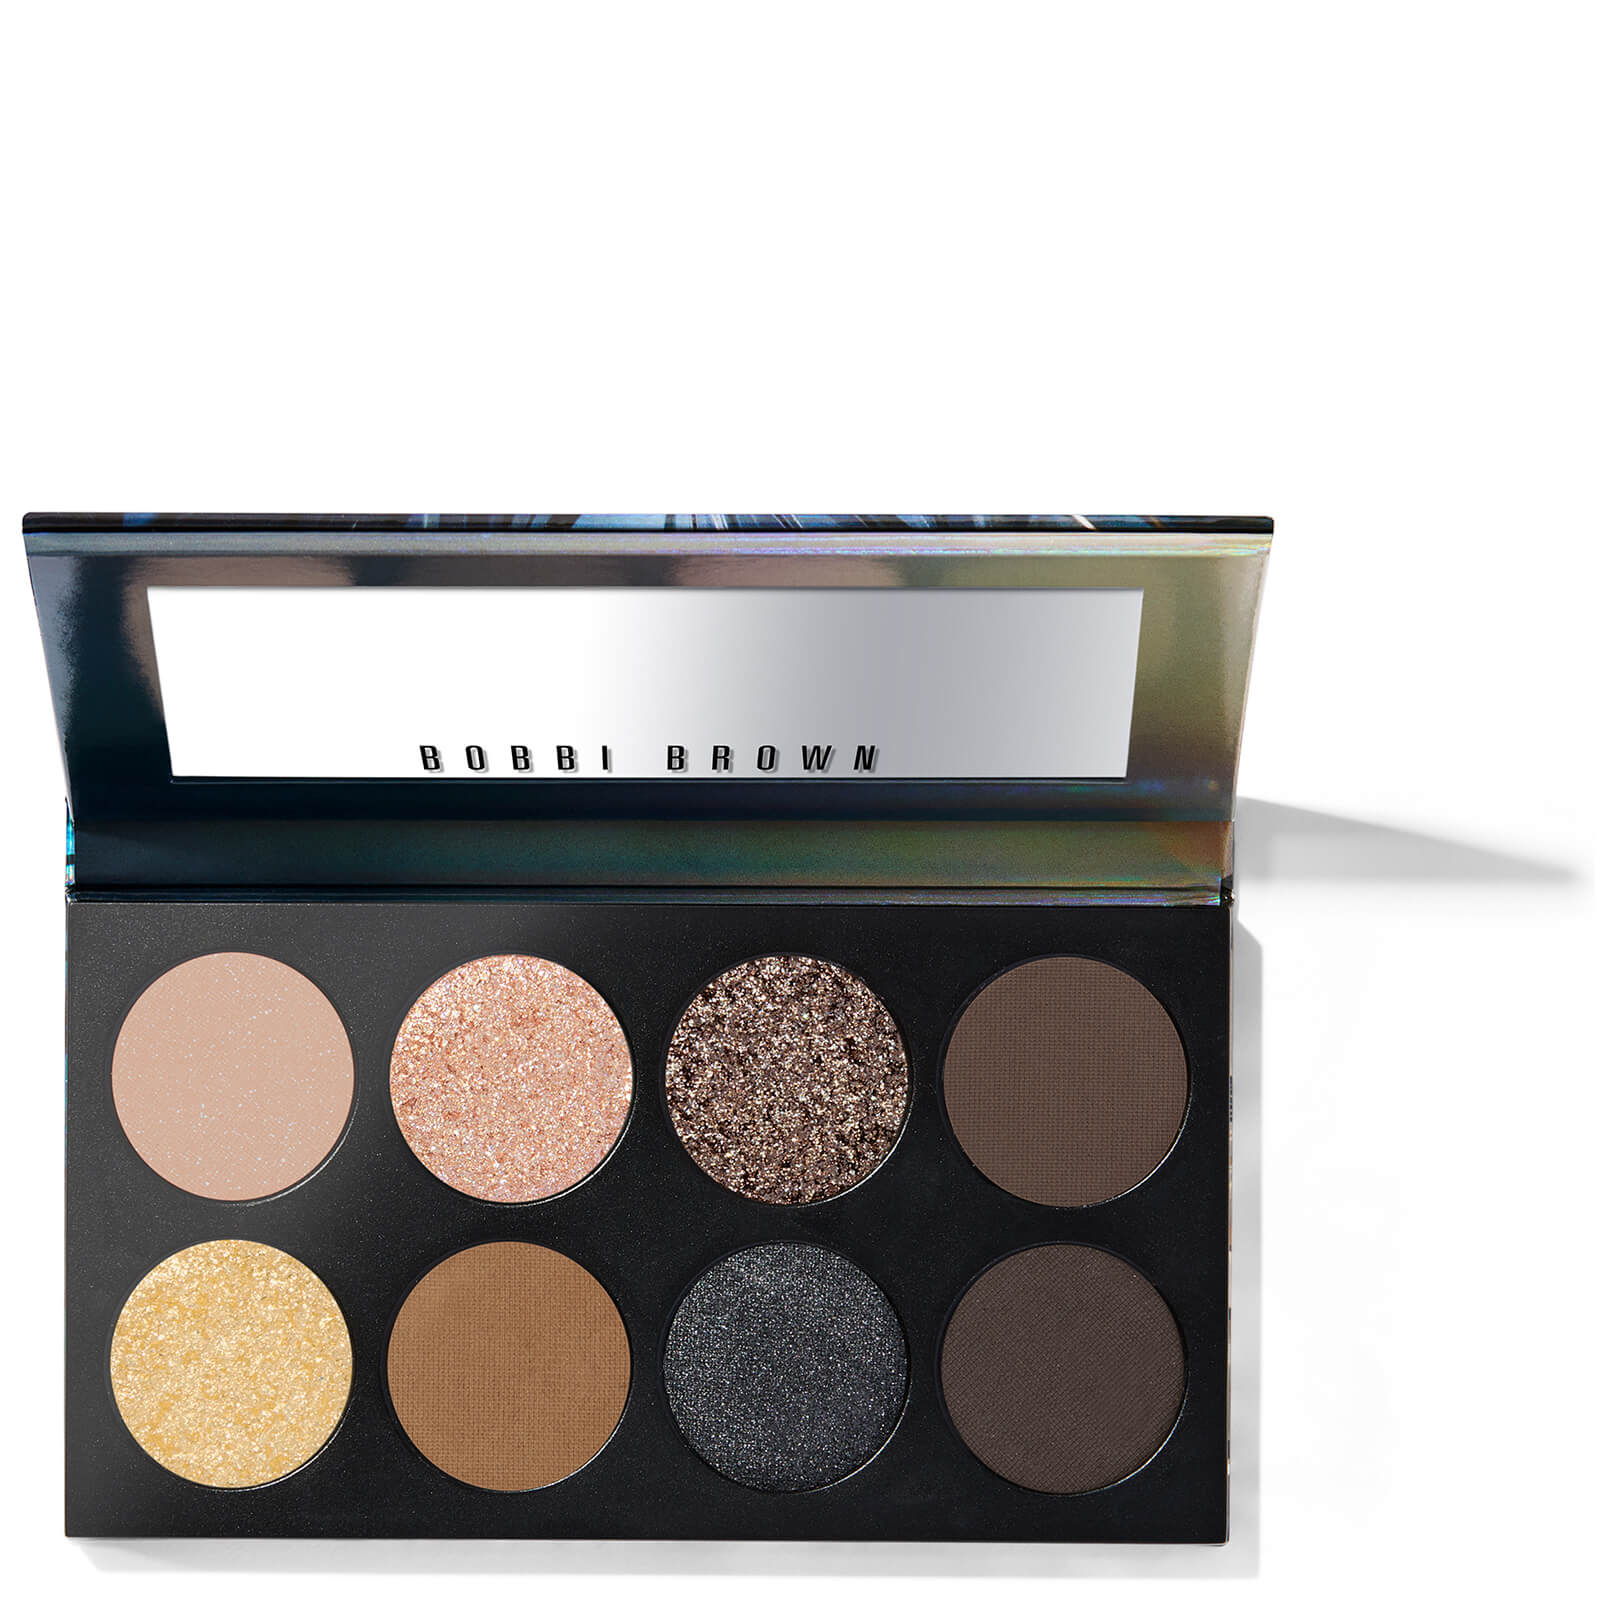 Bobbi Brown Eye Shadow Palette Smokey & Metals